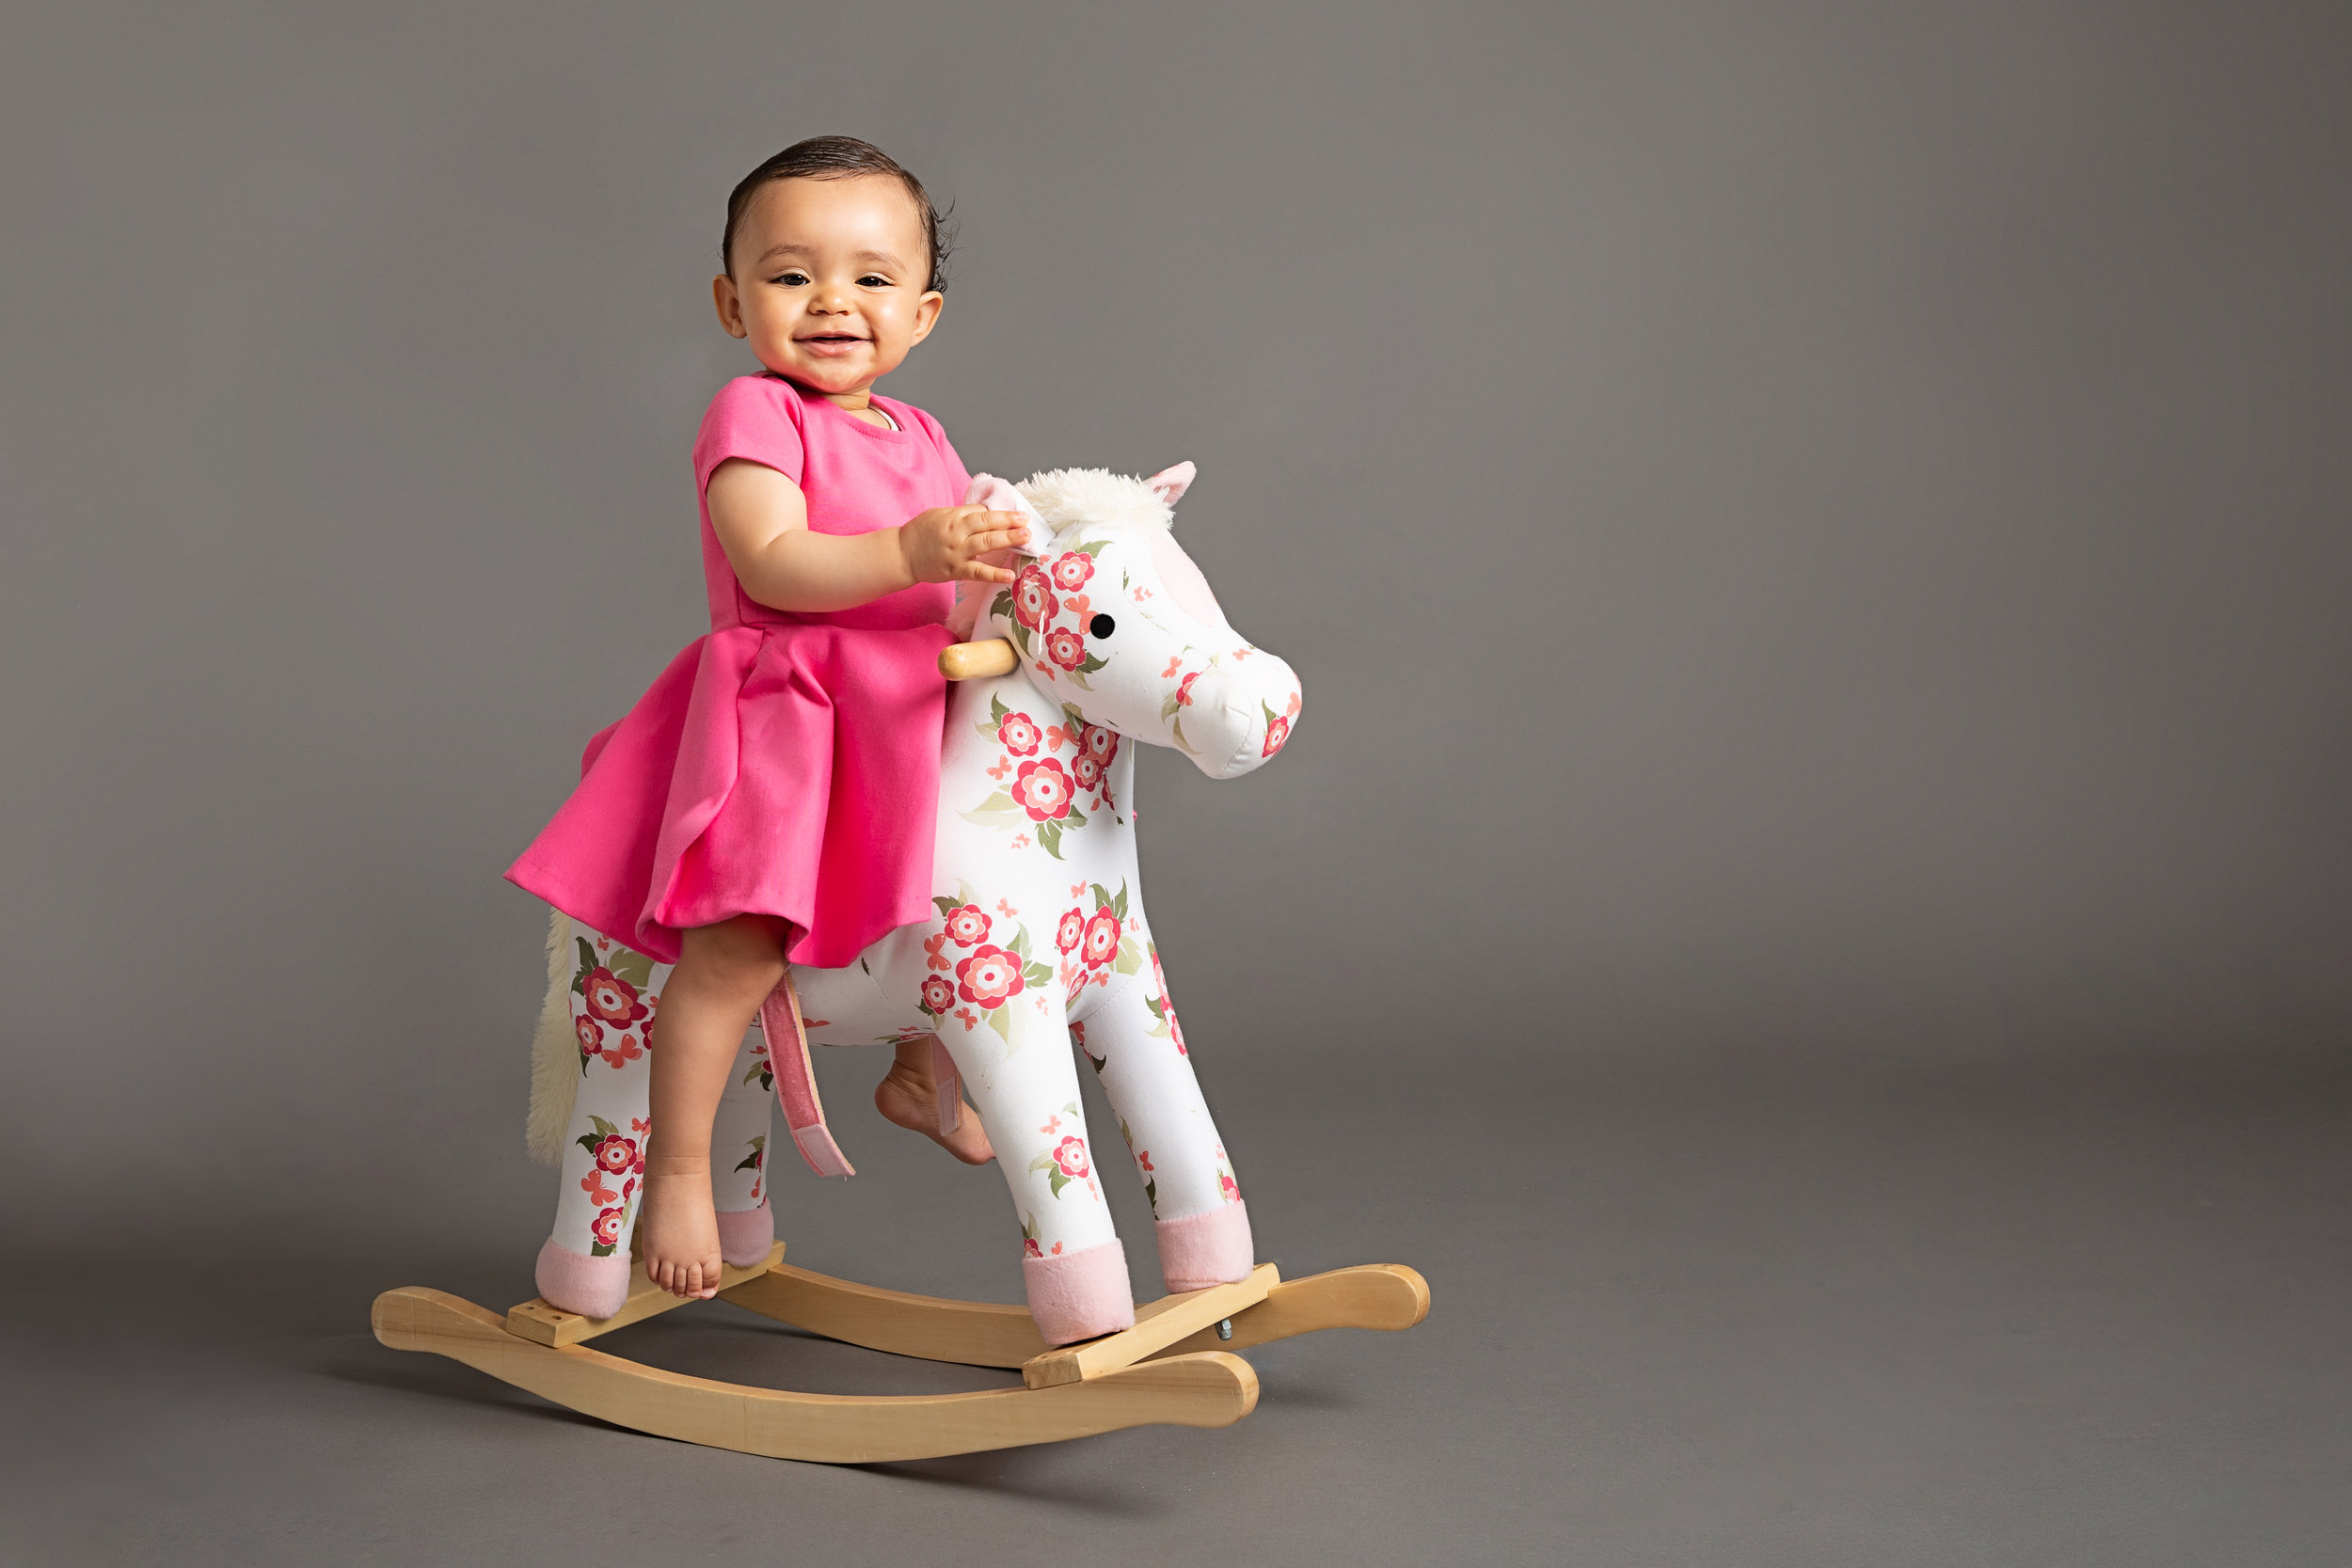 baby-girl-on-rockinghorse-photo-studio-london.jpg